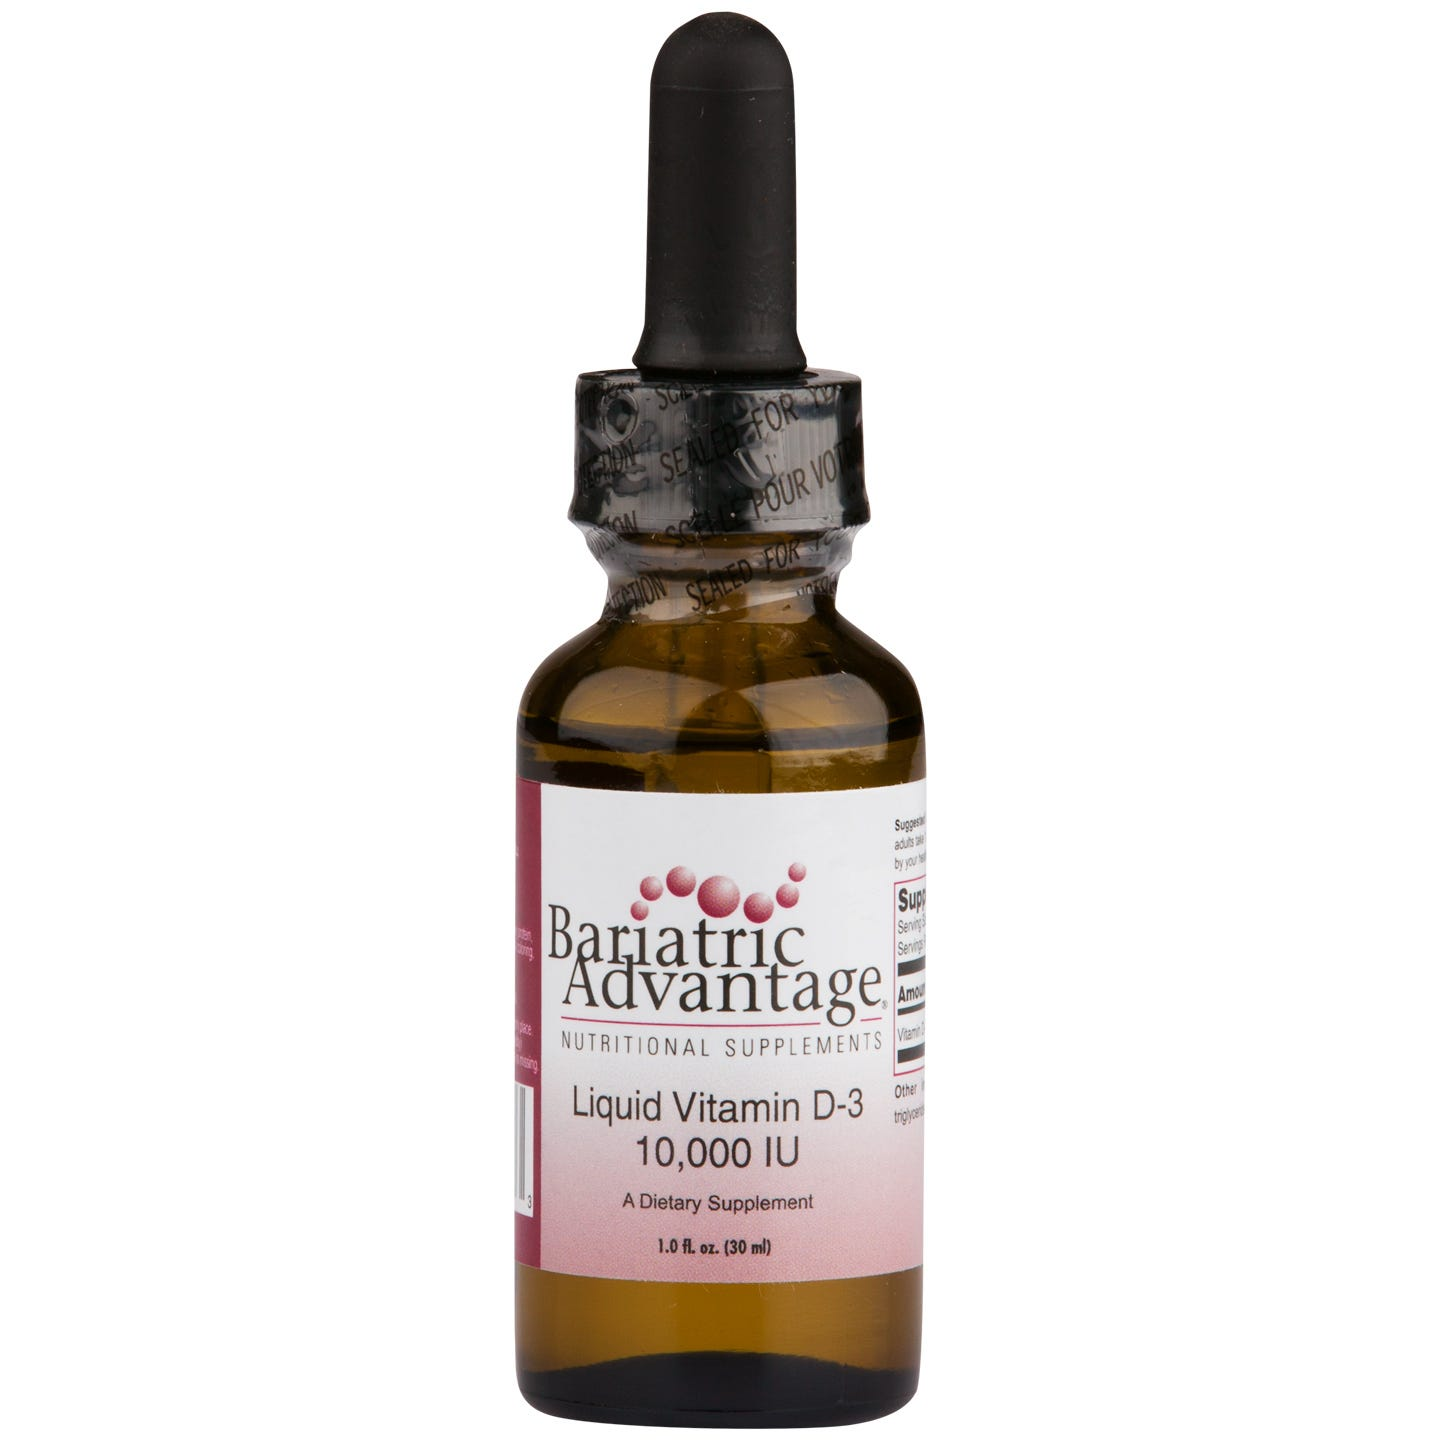 Liquid Emulsion Vitamin D3 1 fl oz, Bariatric Advantage - Rapid Diet Weight Loss Products Shop